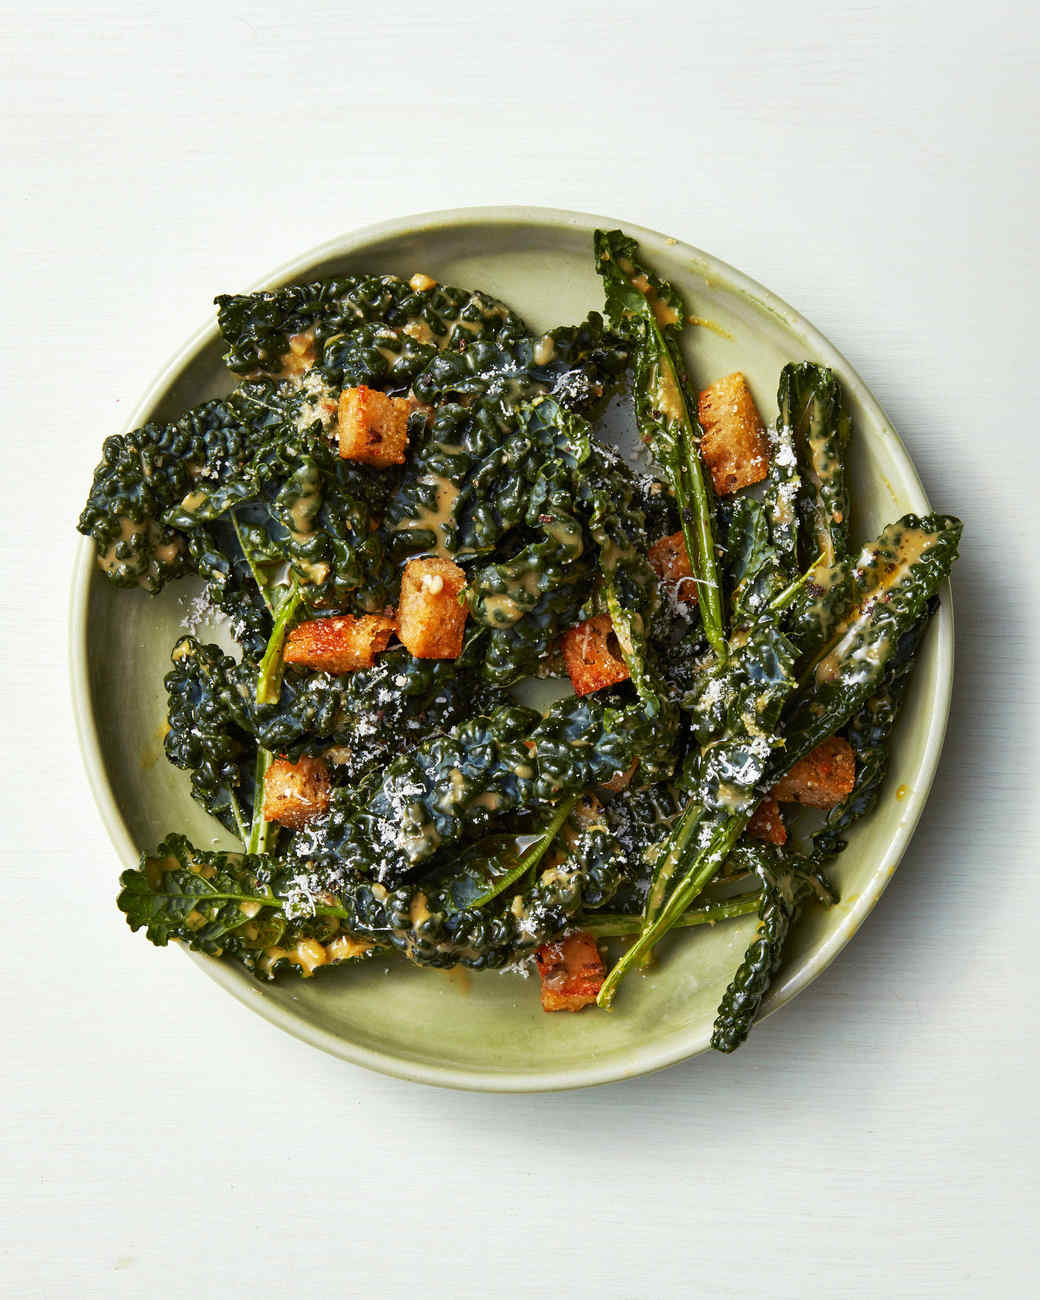 Kale Caesar Salad With Rye Croutons